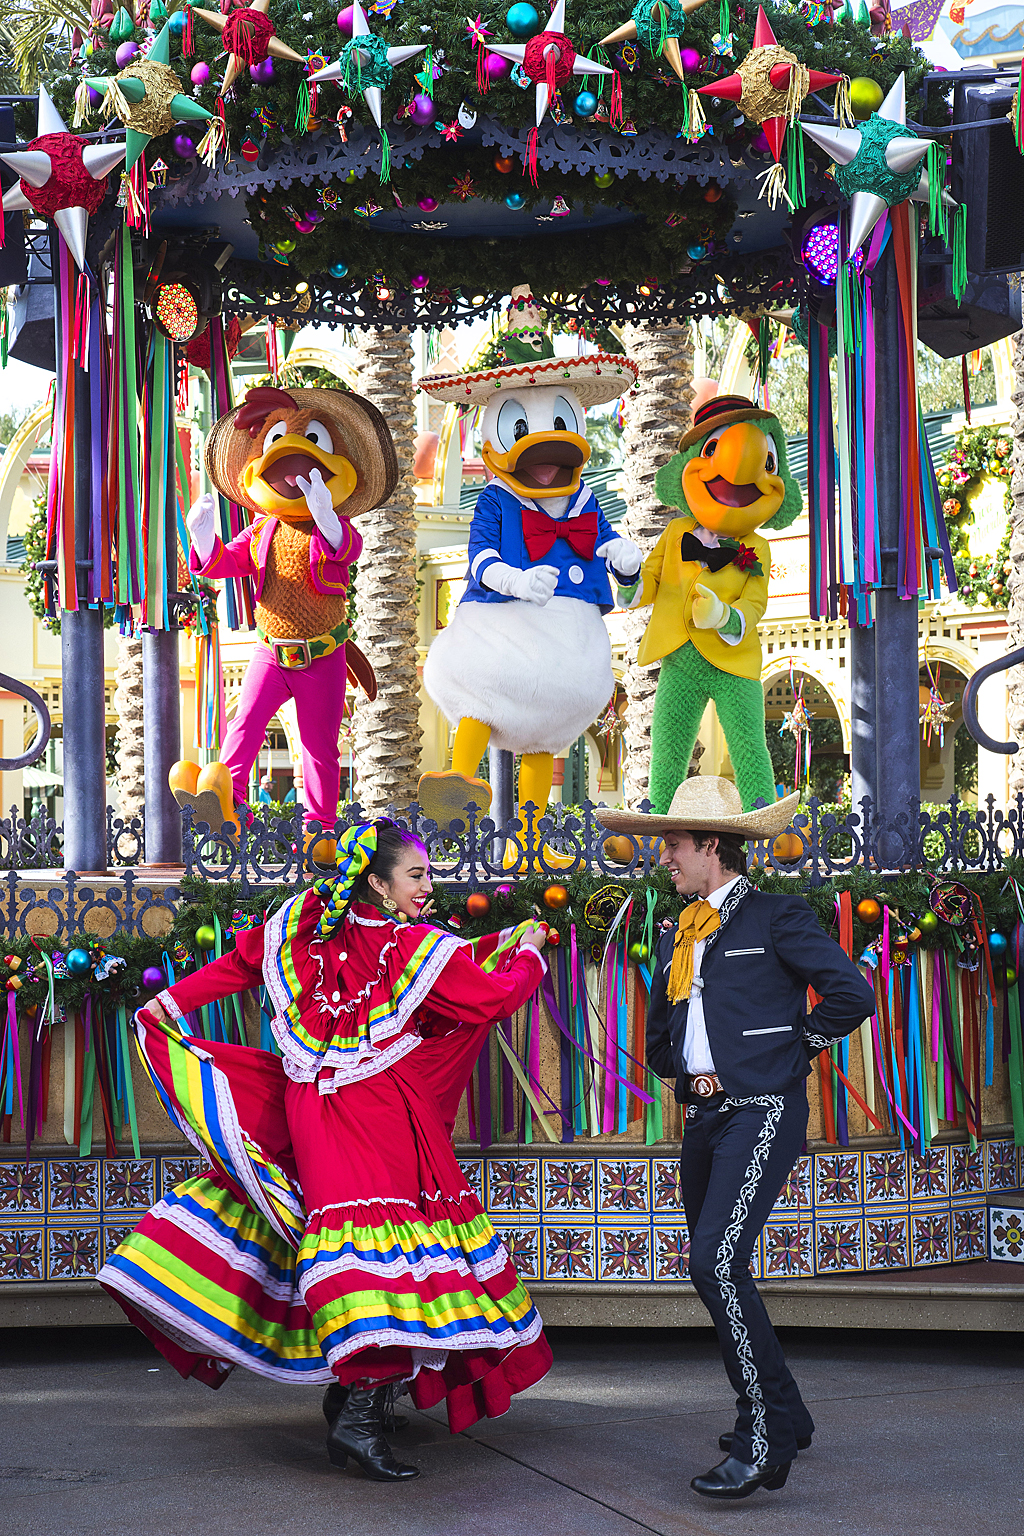 Two Kings Brings The Action In The Spongebob Wars And: Celebrate Three Kings Day At Disneyland Resort